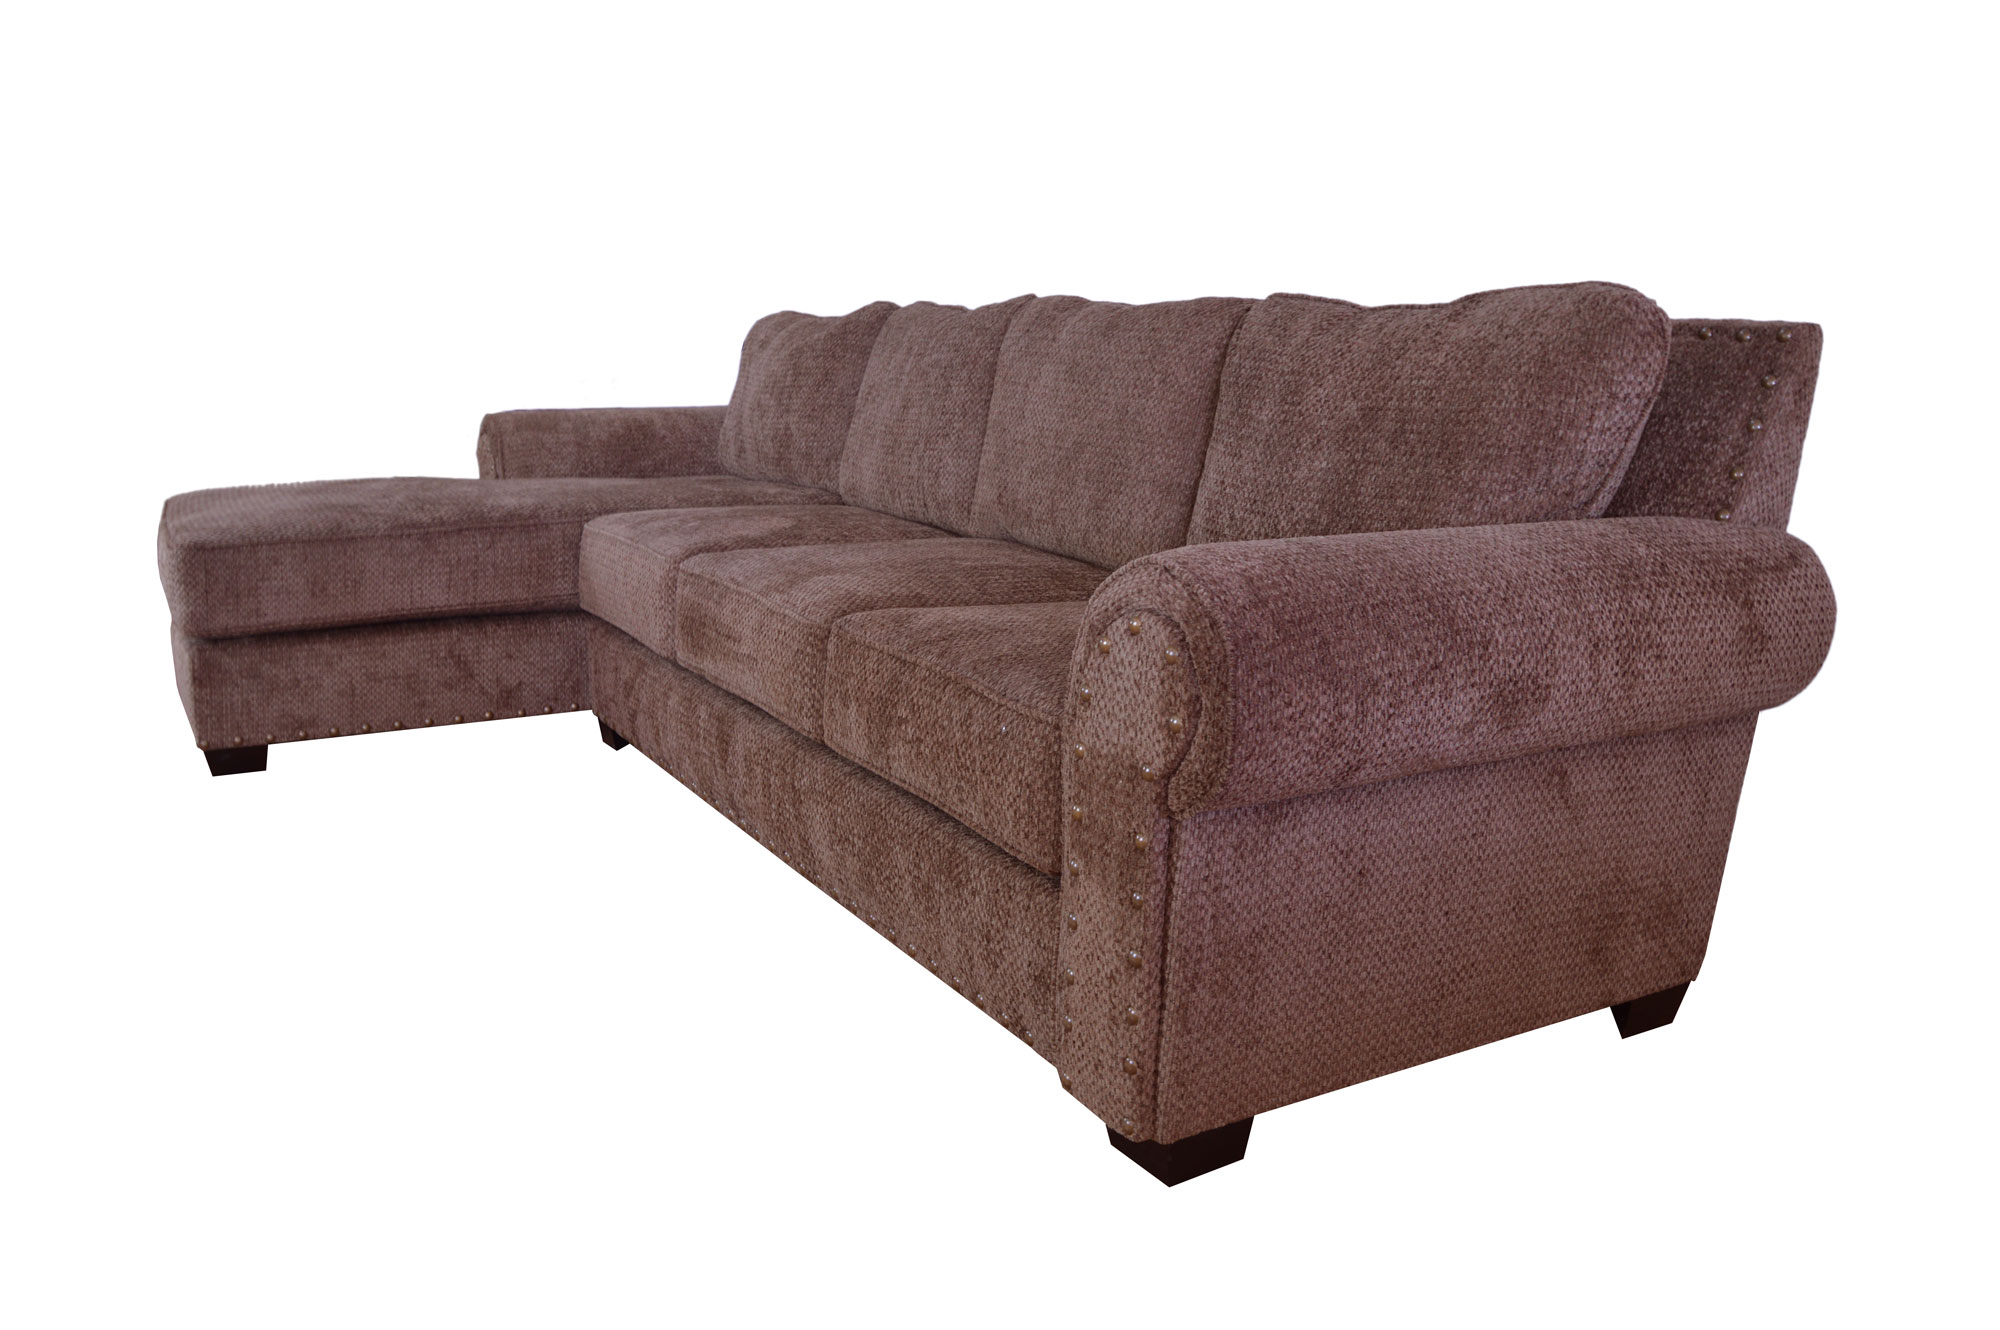 custom sofas for less concord cool sofa arm covers lancaster 4